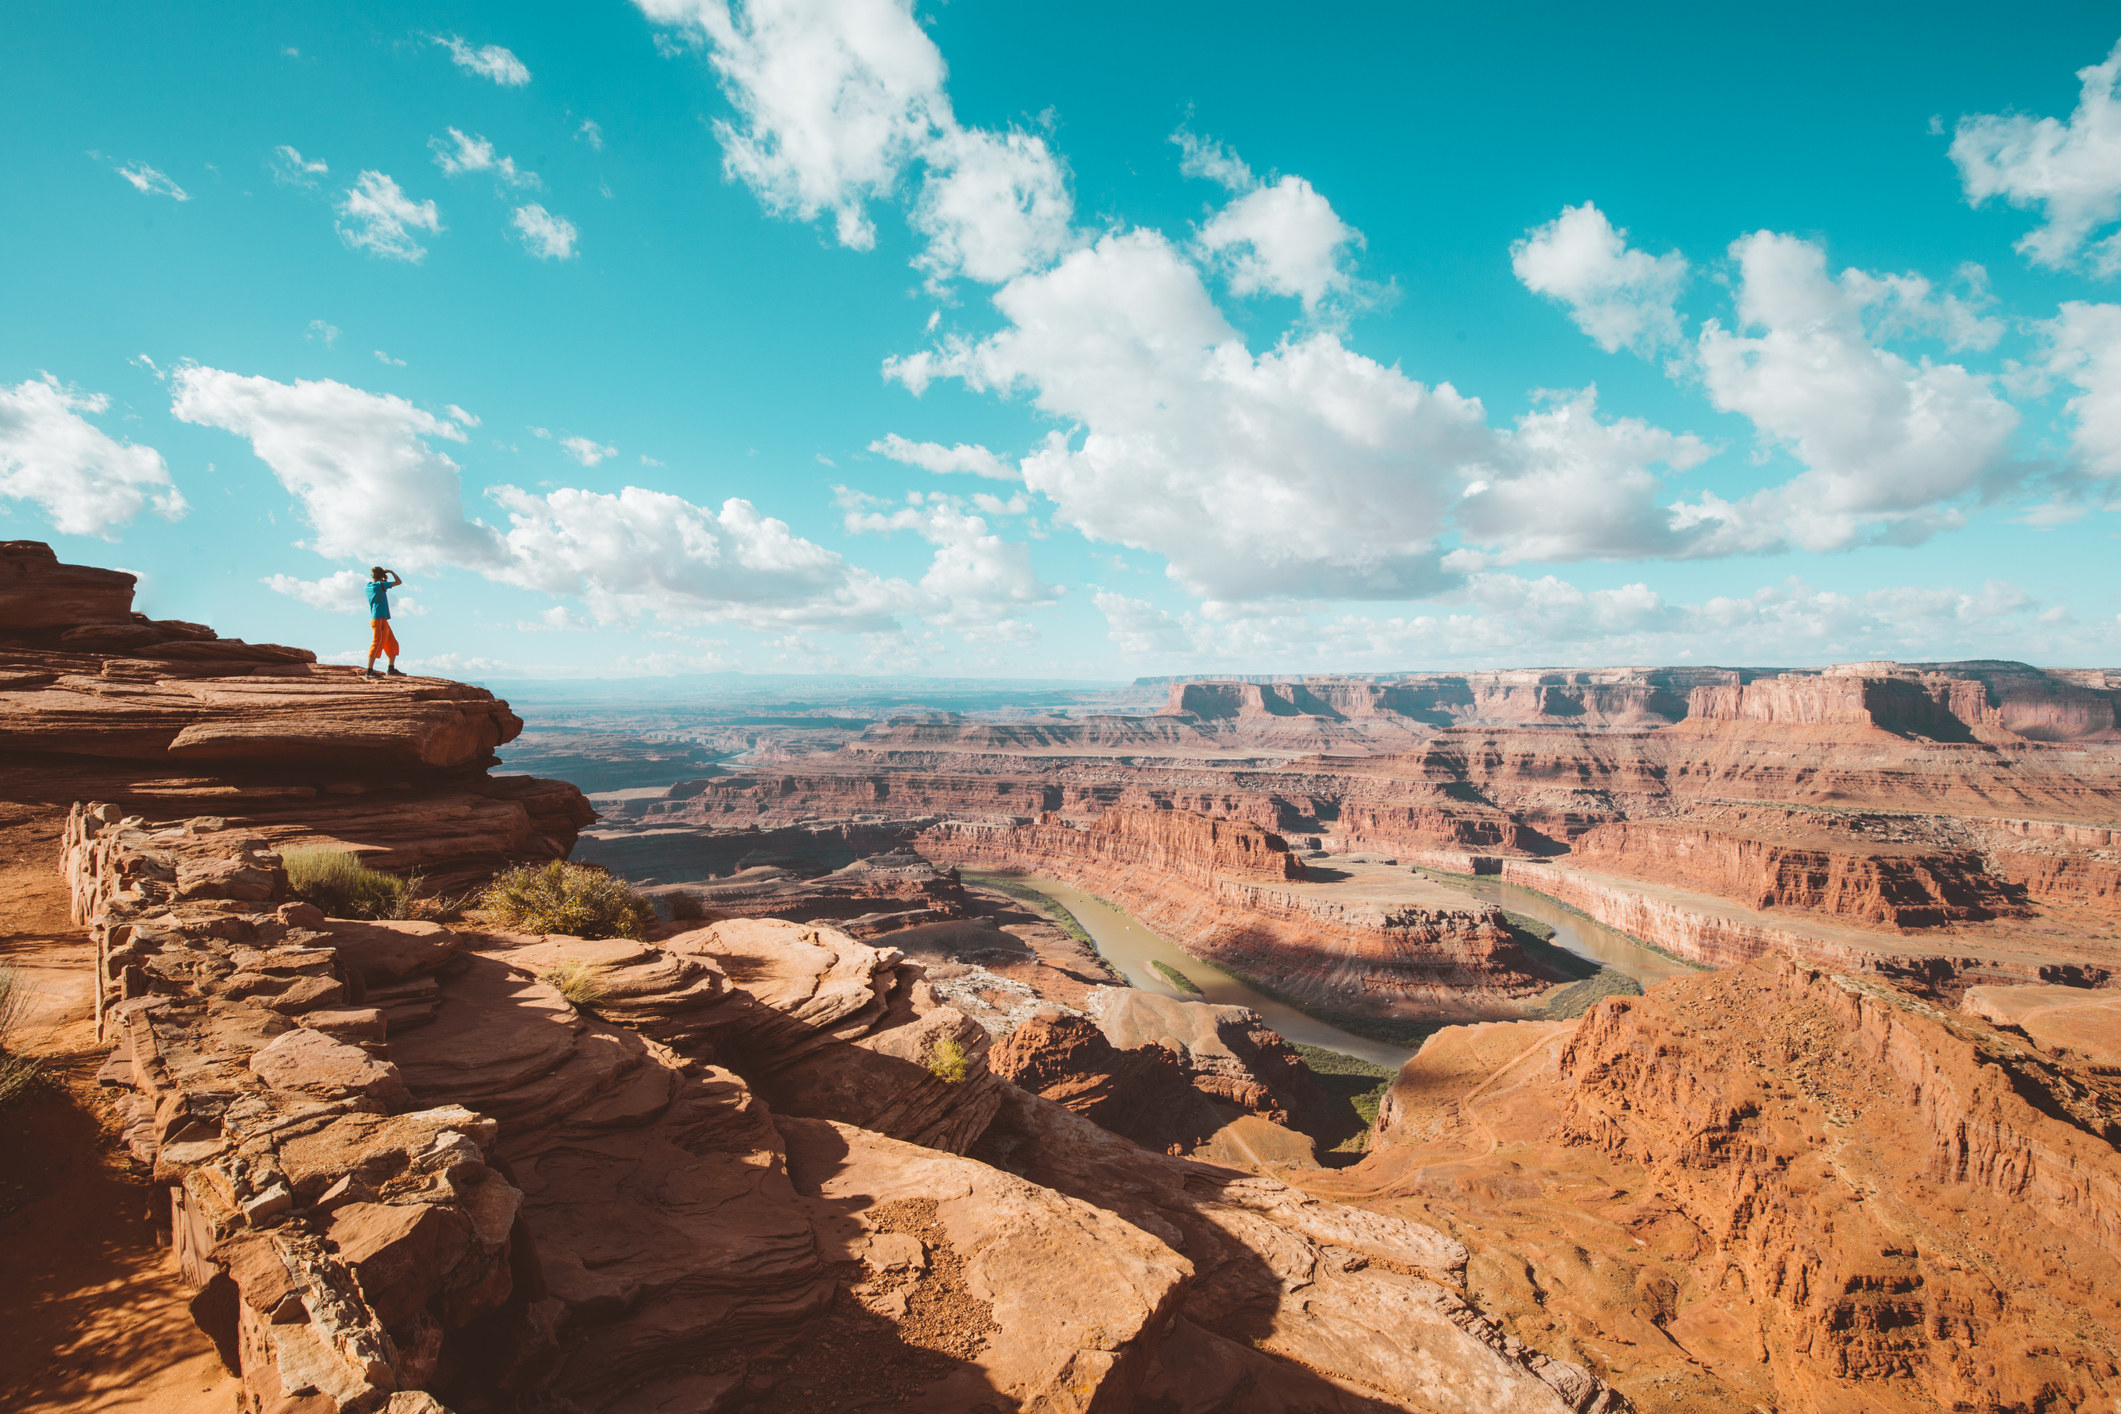 A young male hiker is standing on the edge of a cliff enjoying a dramatic overlook of the famous Colorado River and beautiful Canyonlands National Park